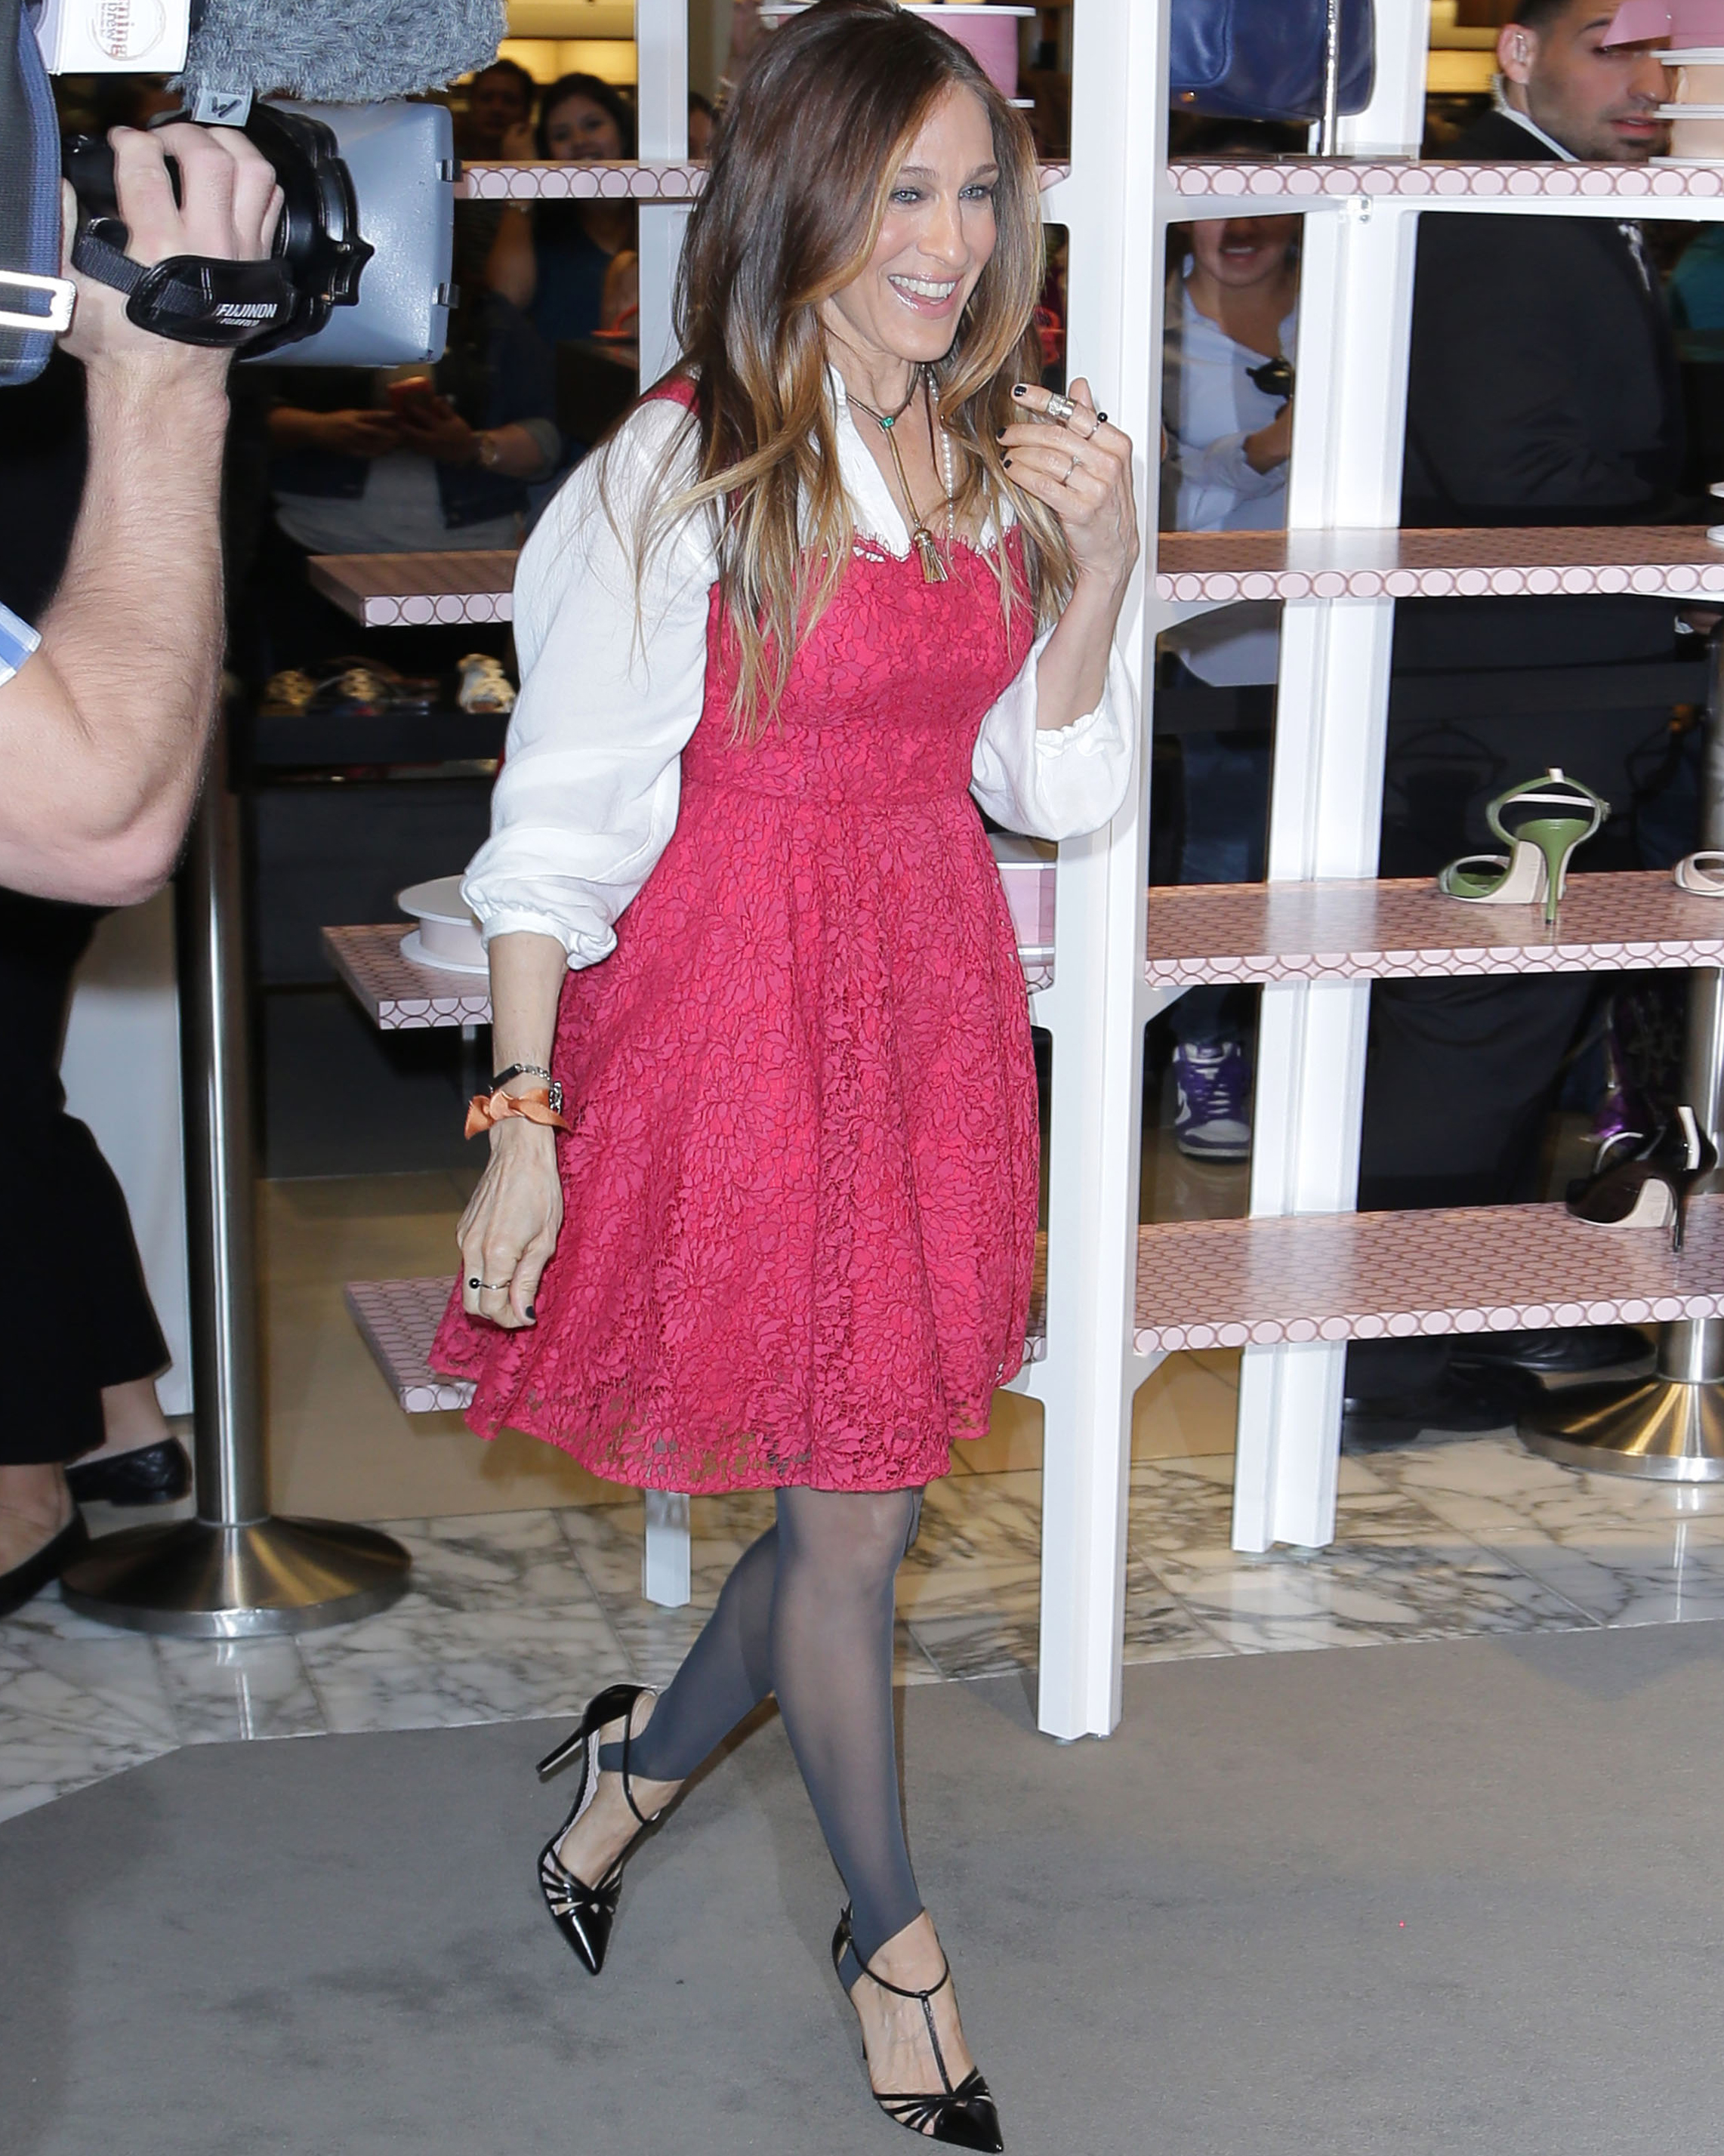 SJP Shoe Line Launch at Nordstrom